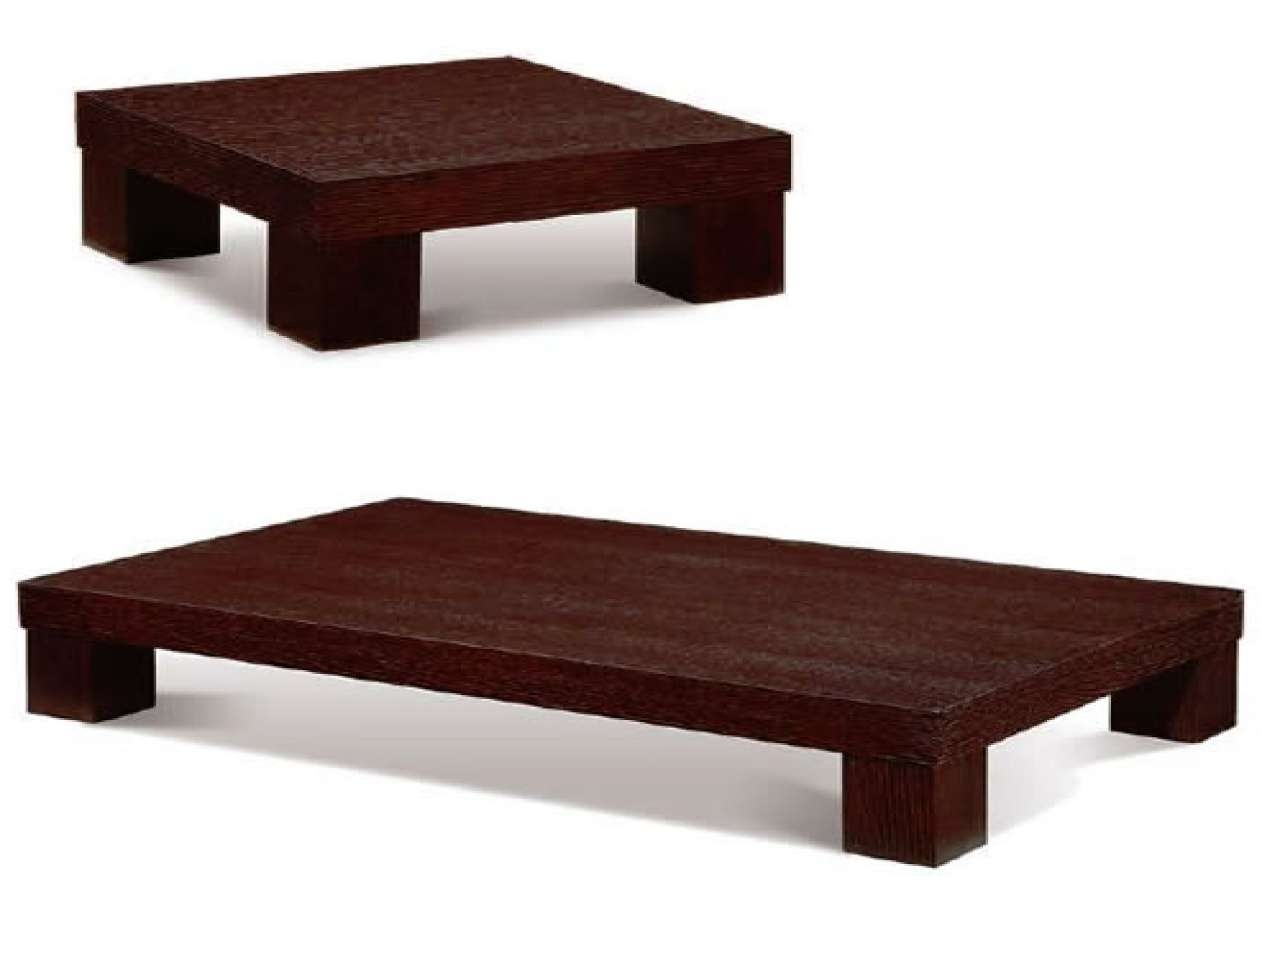 Ultra Low Profile Coffee Table • Coffee Table Design With Latest Tokyo Coffee Tables (Gallery 19 of 20)